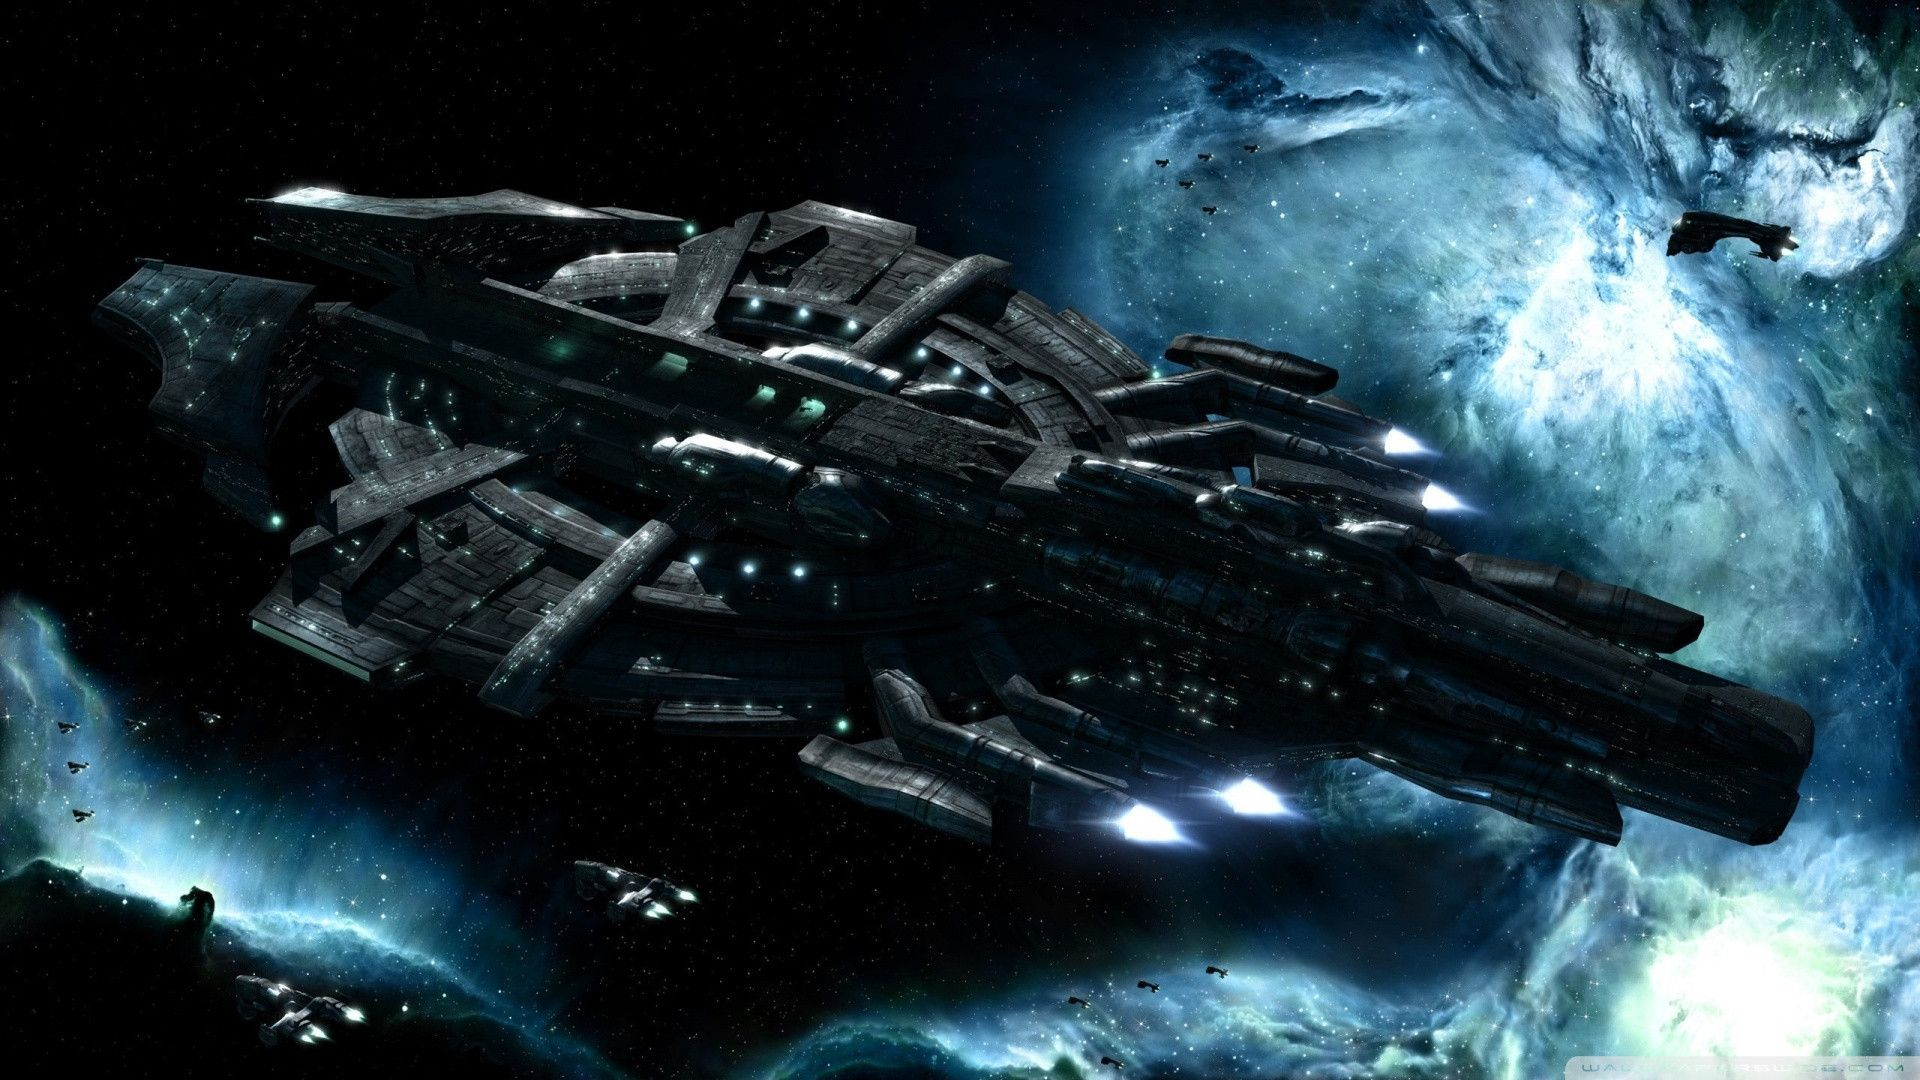 49 Spaceship Photos and Pictures RT11 4K Ultra HD Wallpapers 1920x1080